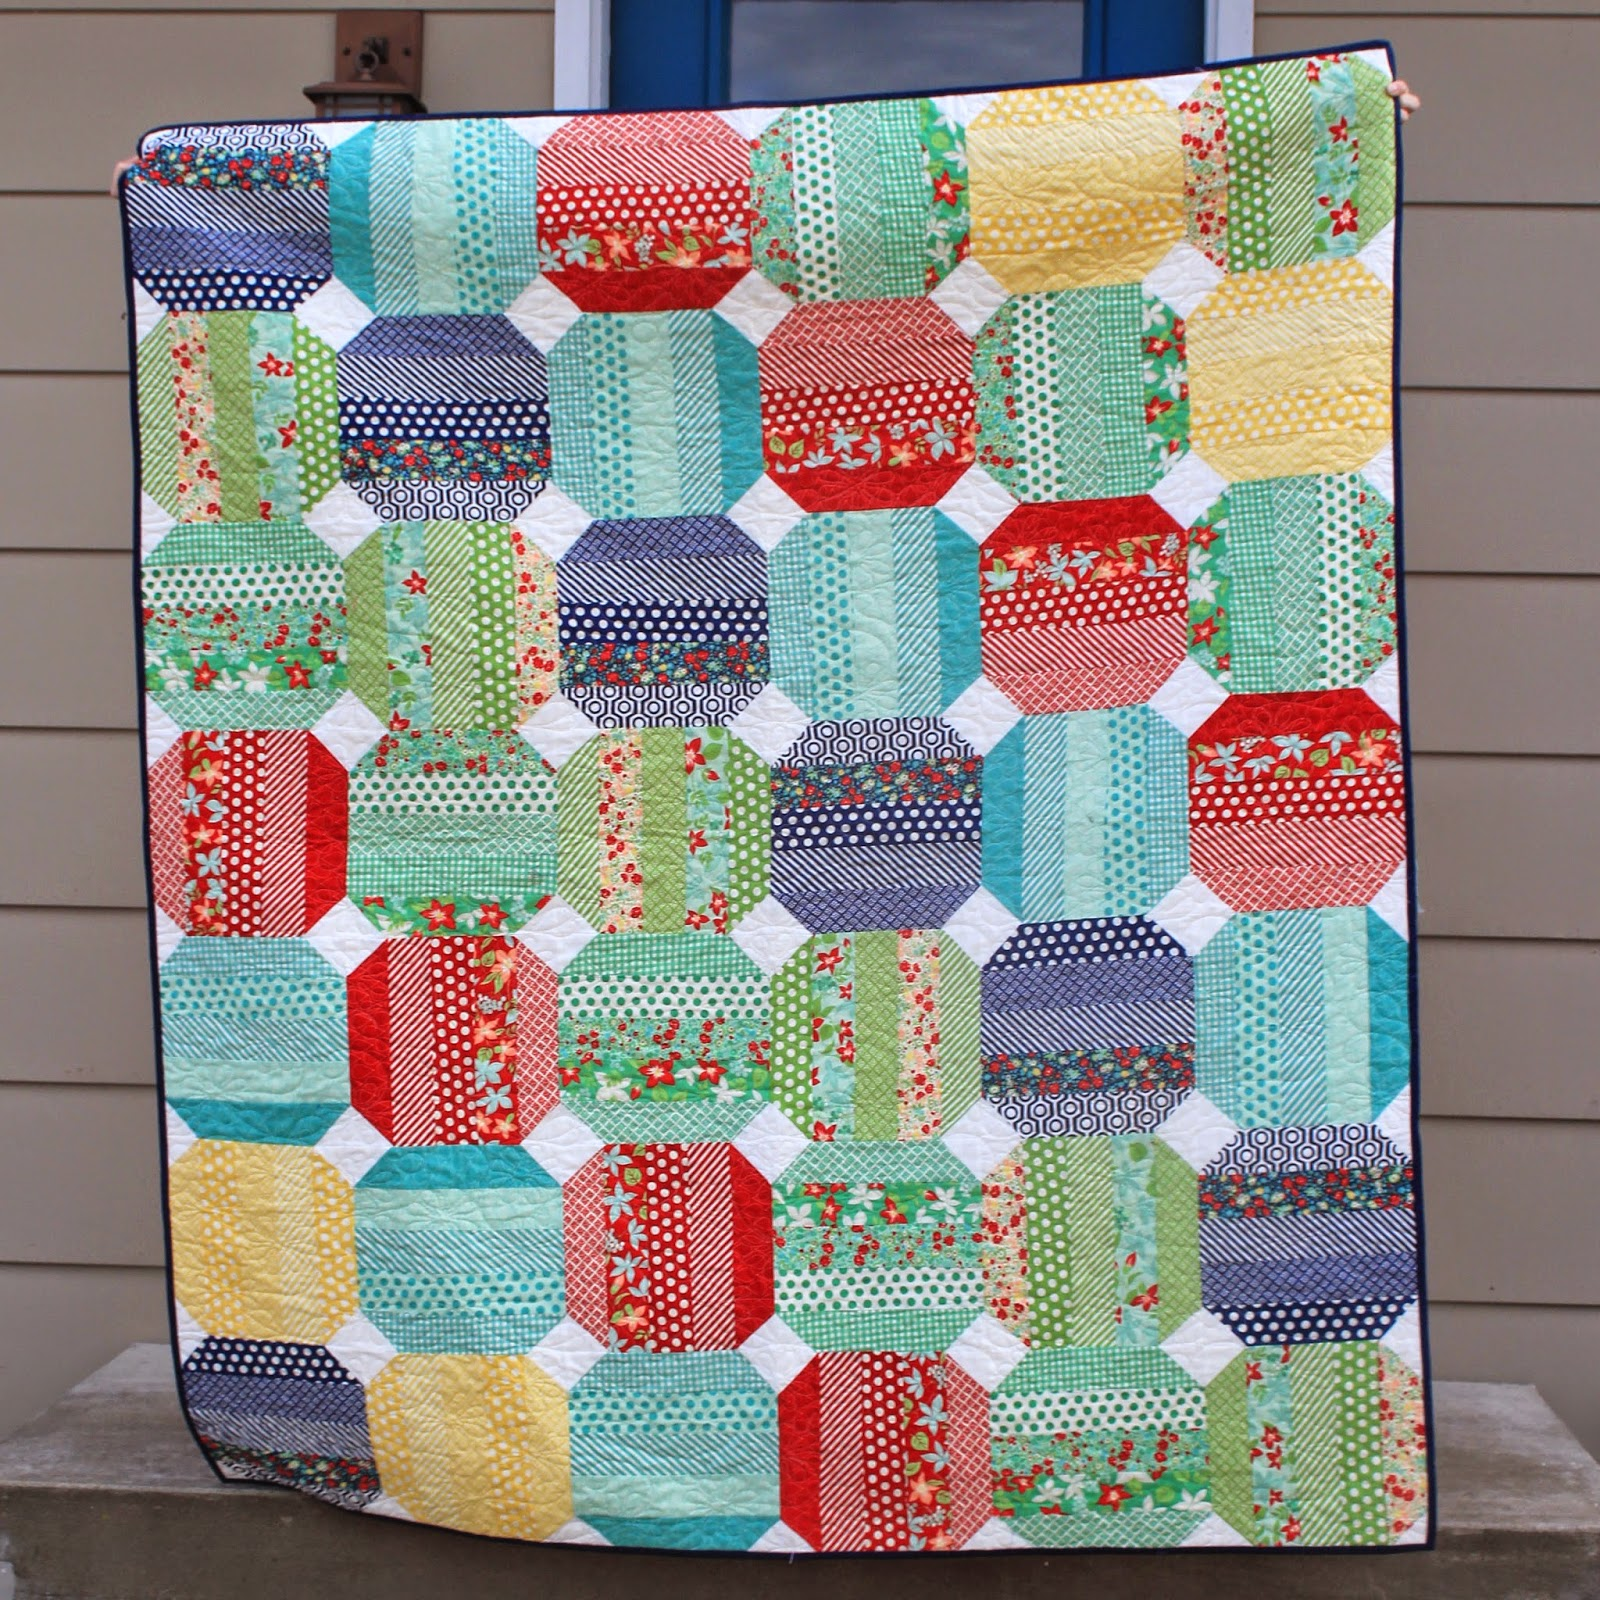 Bonnie and Camille's April Showers quilt with jelly rolls